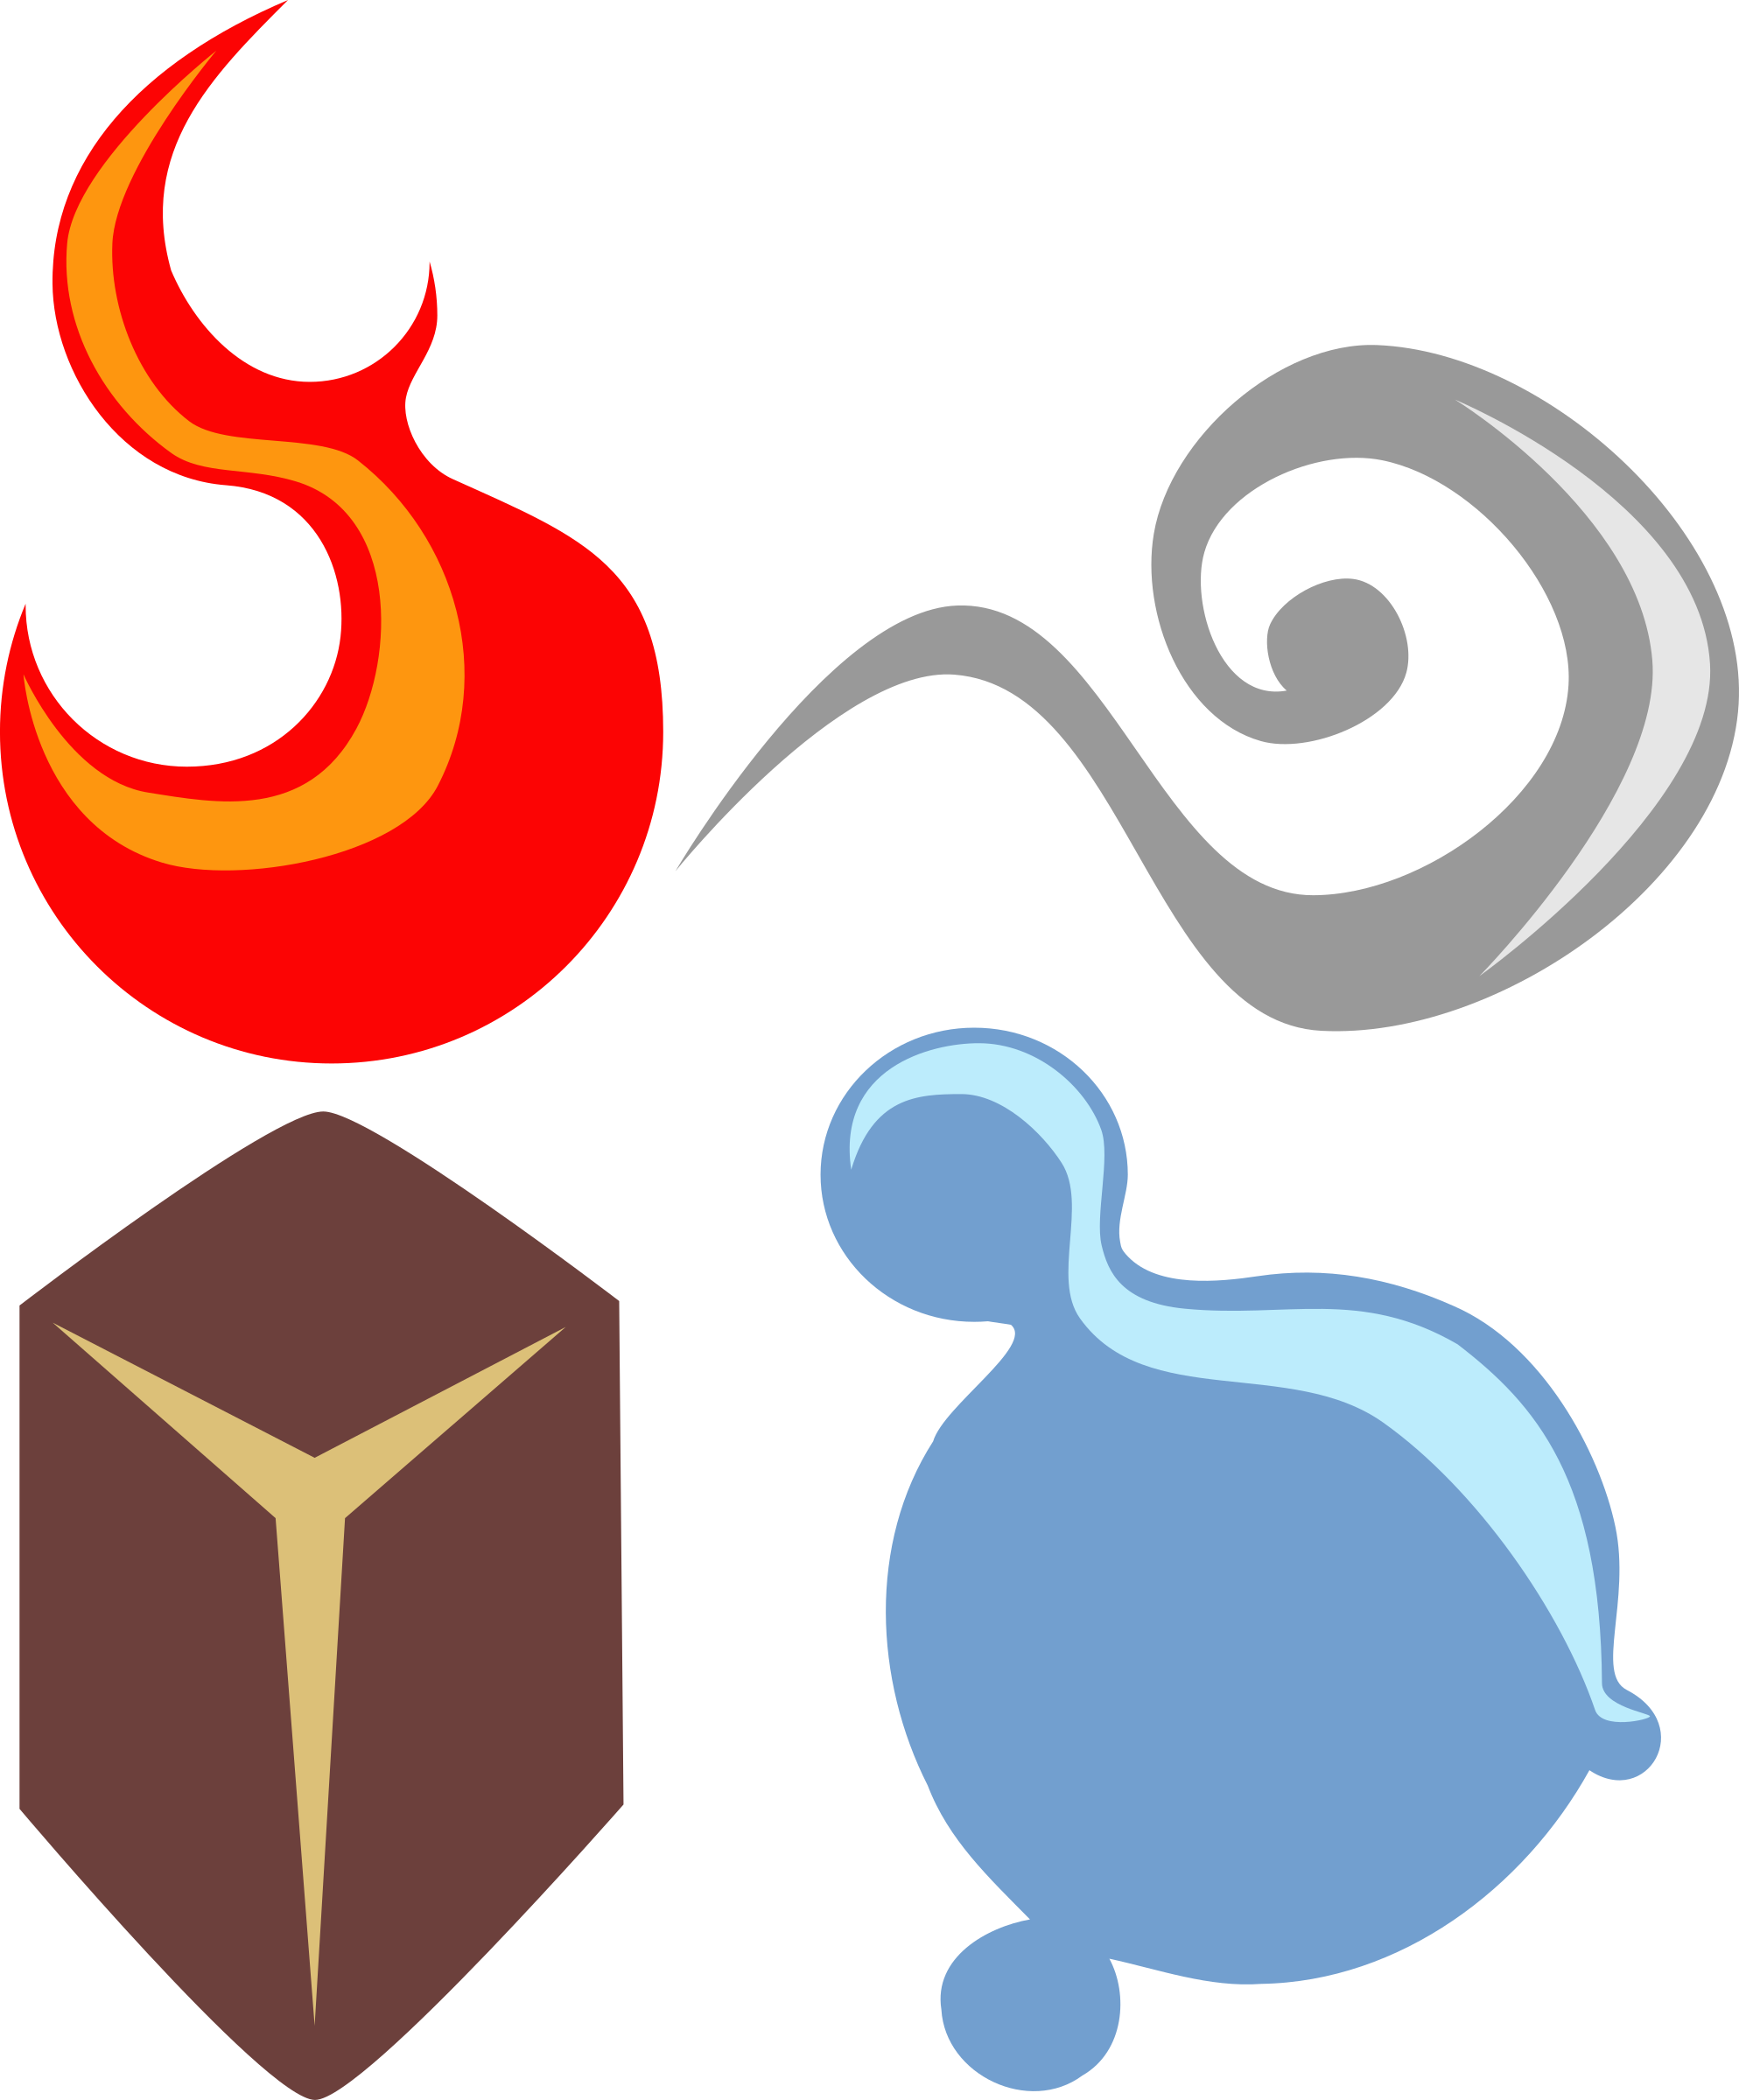 The Four Elements clipart #10, Download drawings